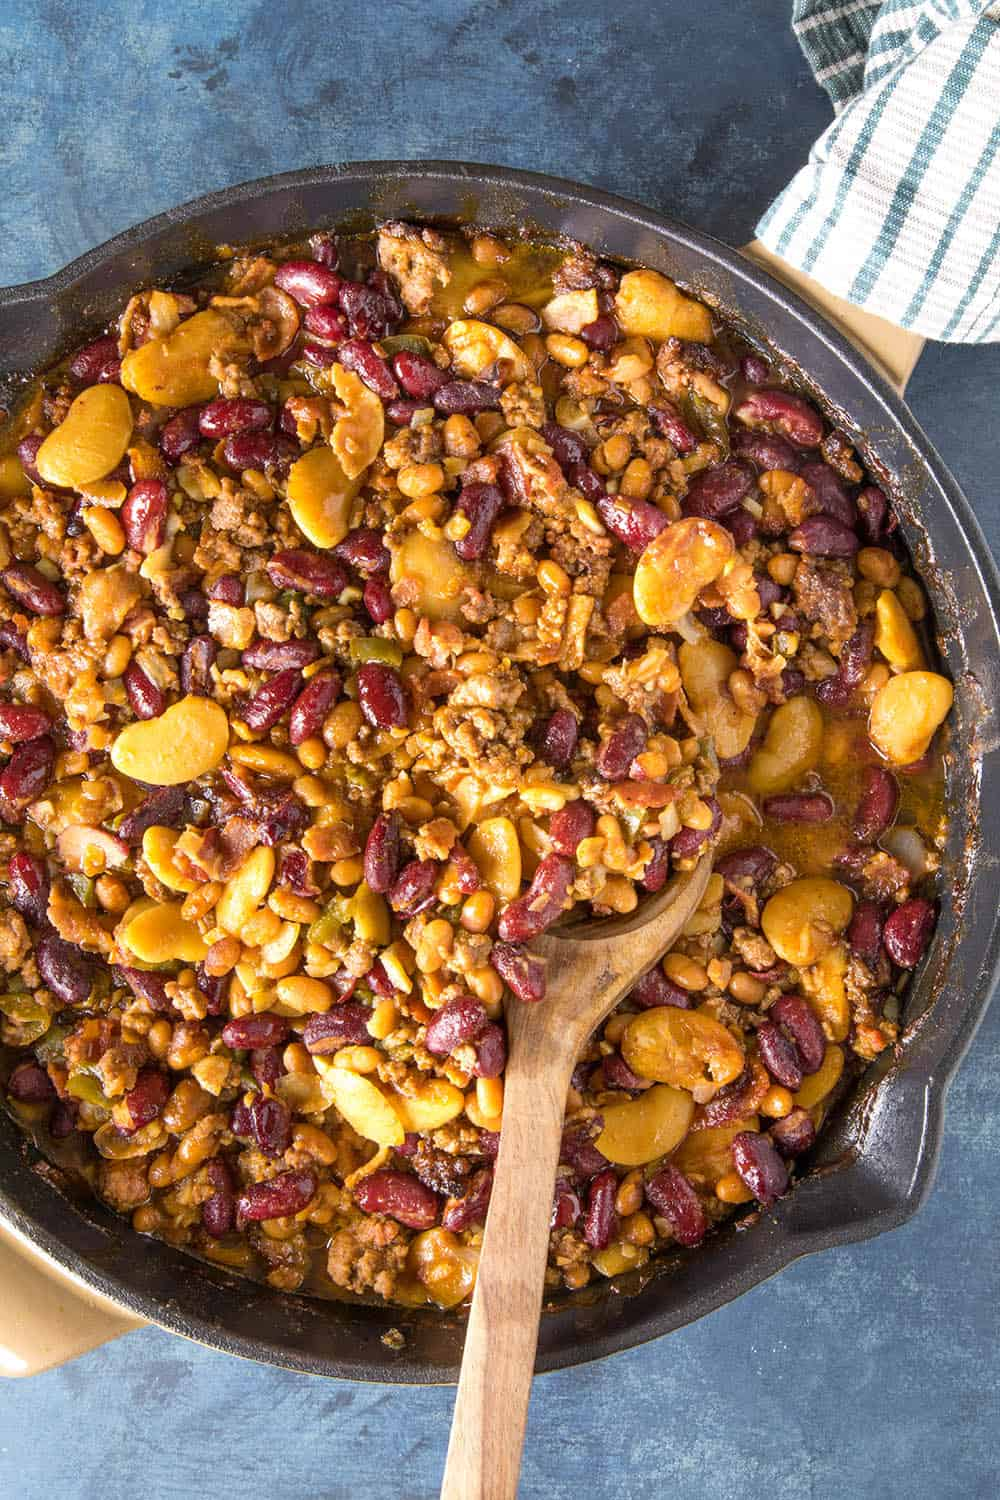 Cowboy Beans, just finished cooking